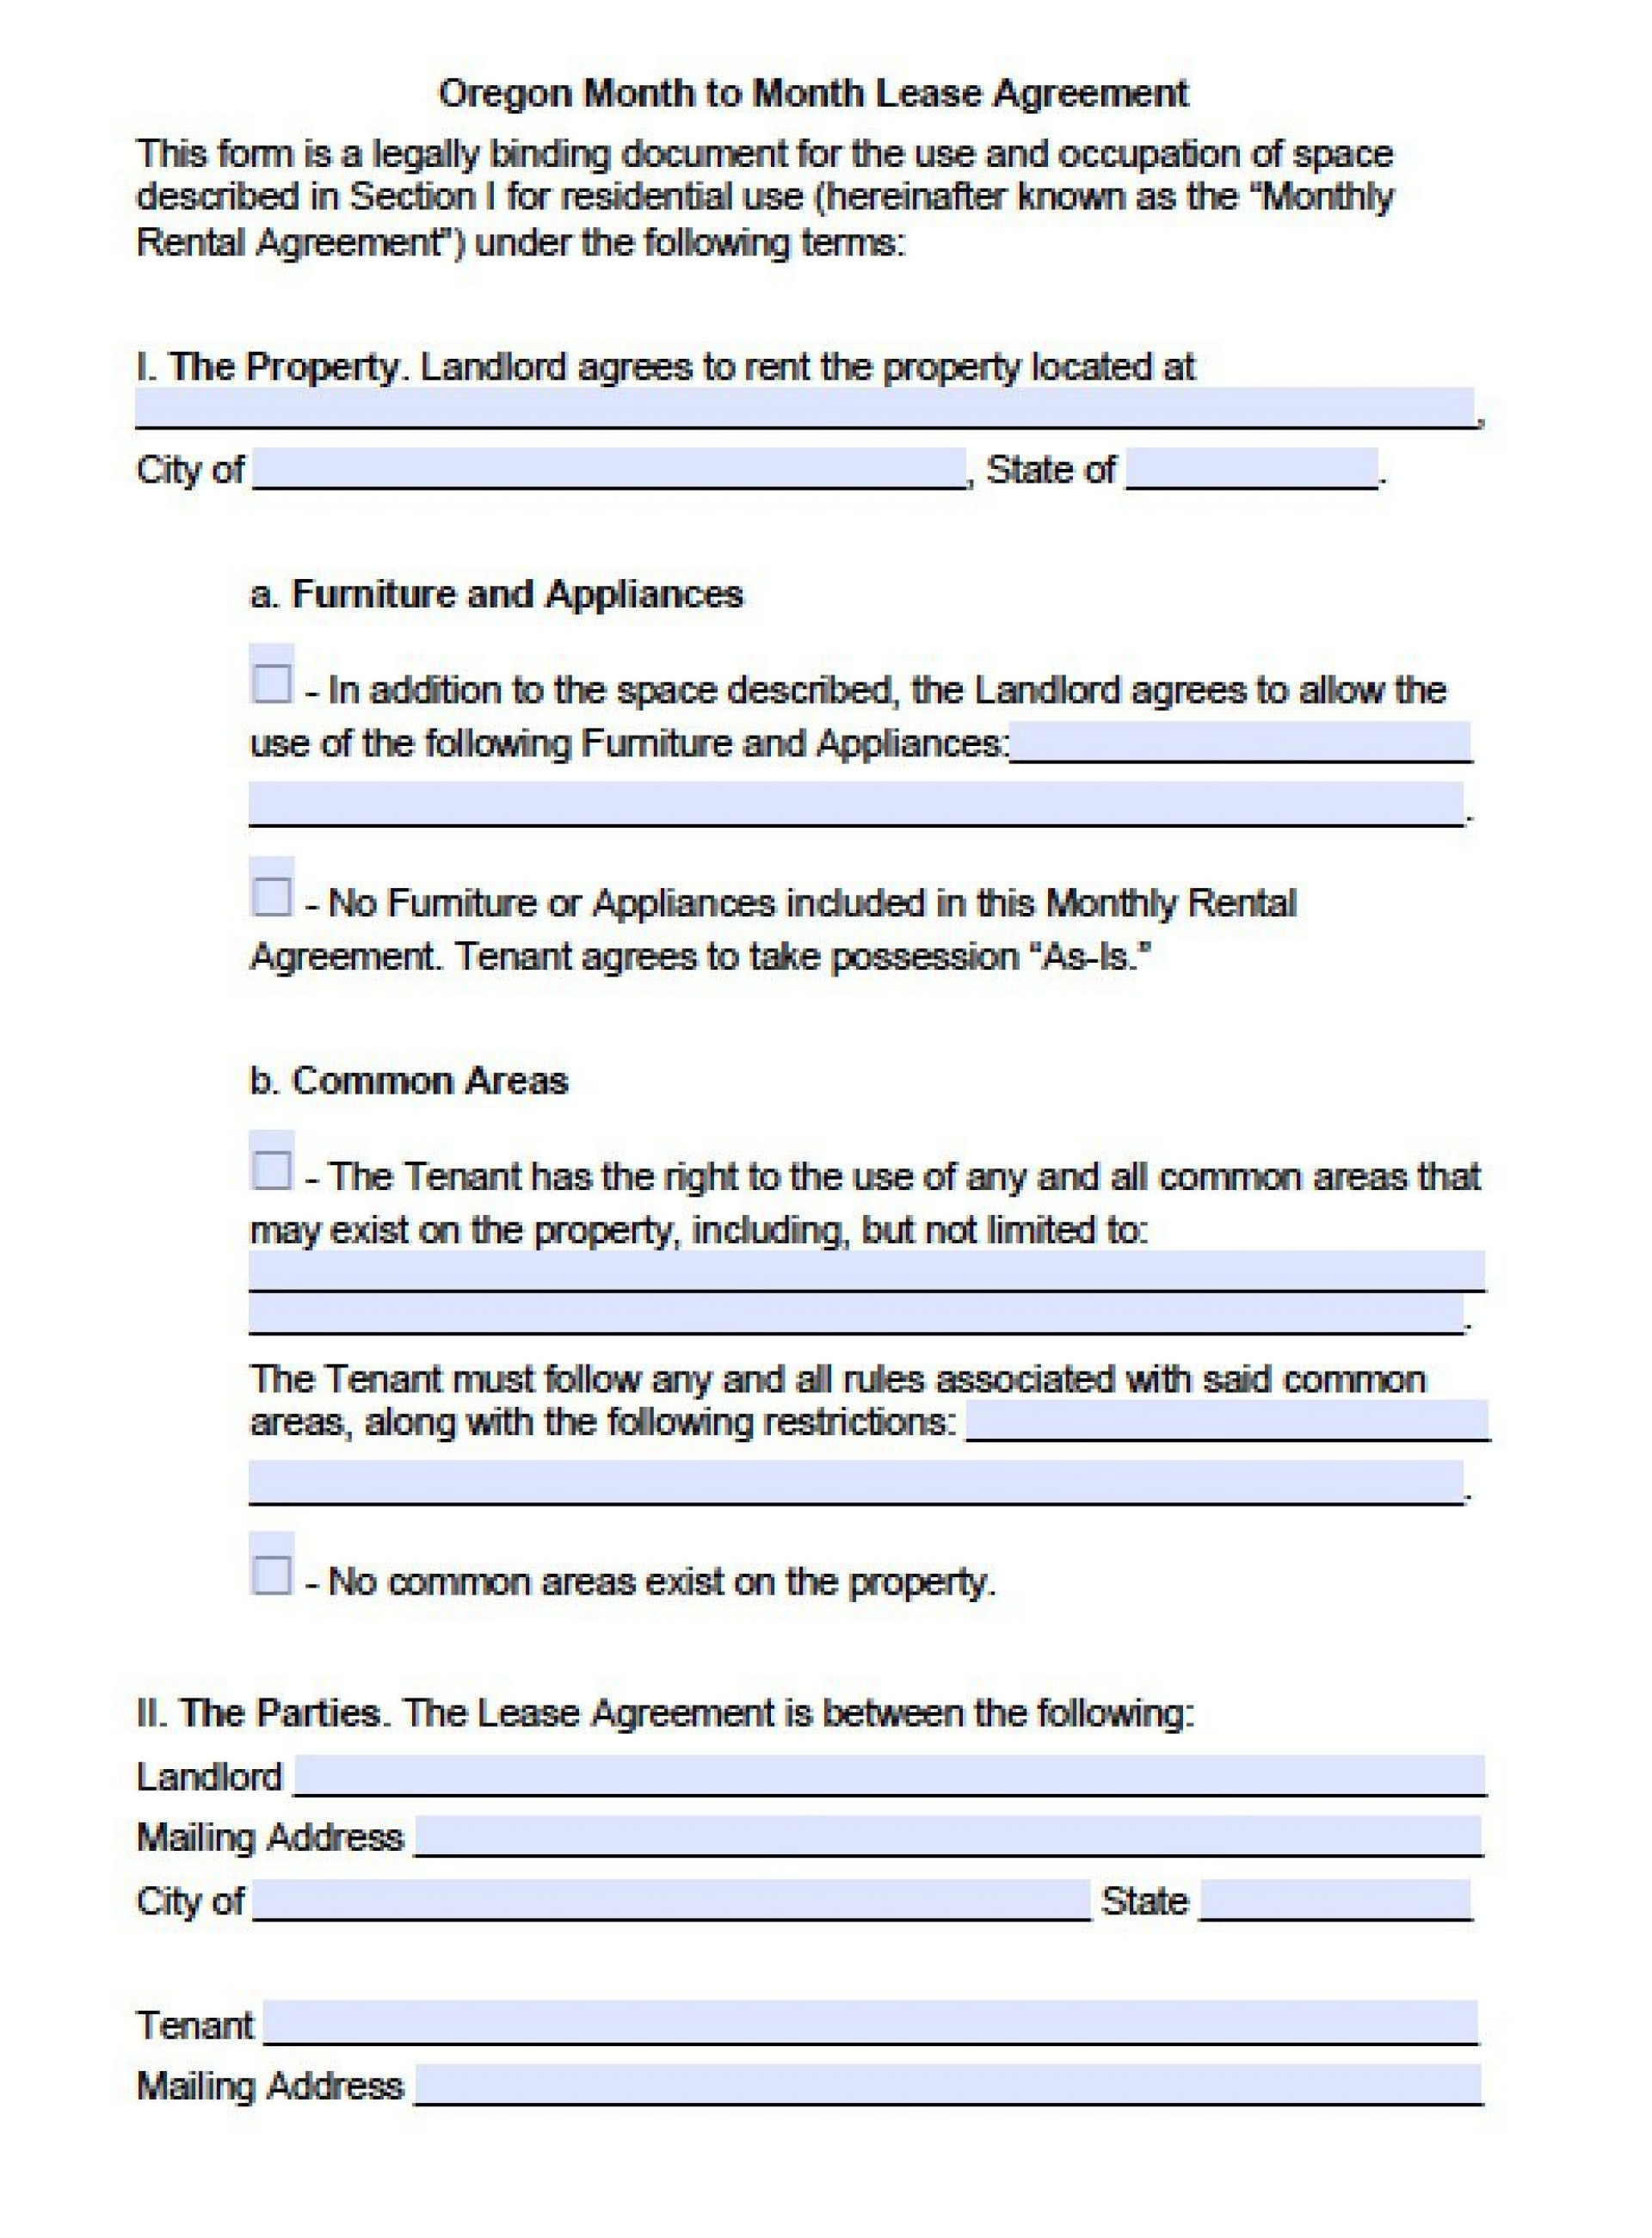 005 Stupendou Renter Lease Agreement Template Inspiration  Apartment Form Early Termination Of By Tenant South Africa Free1920